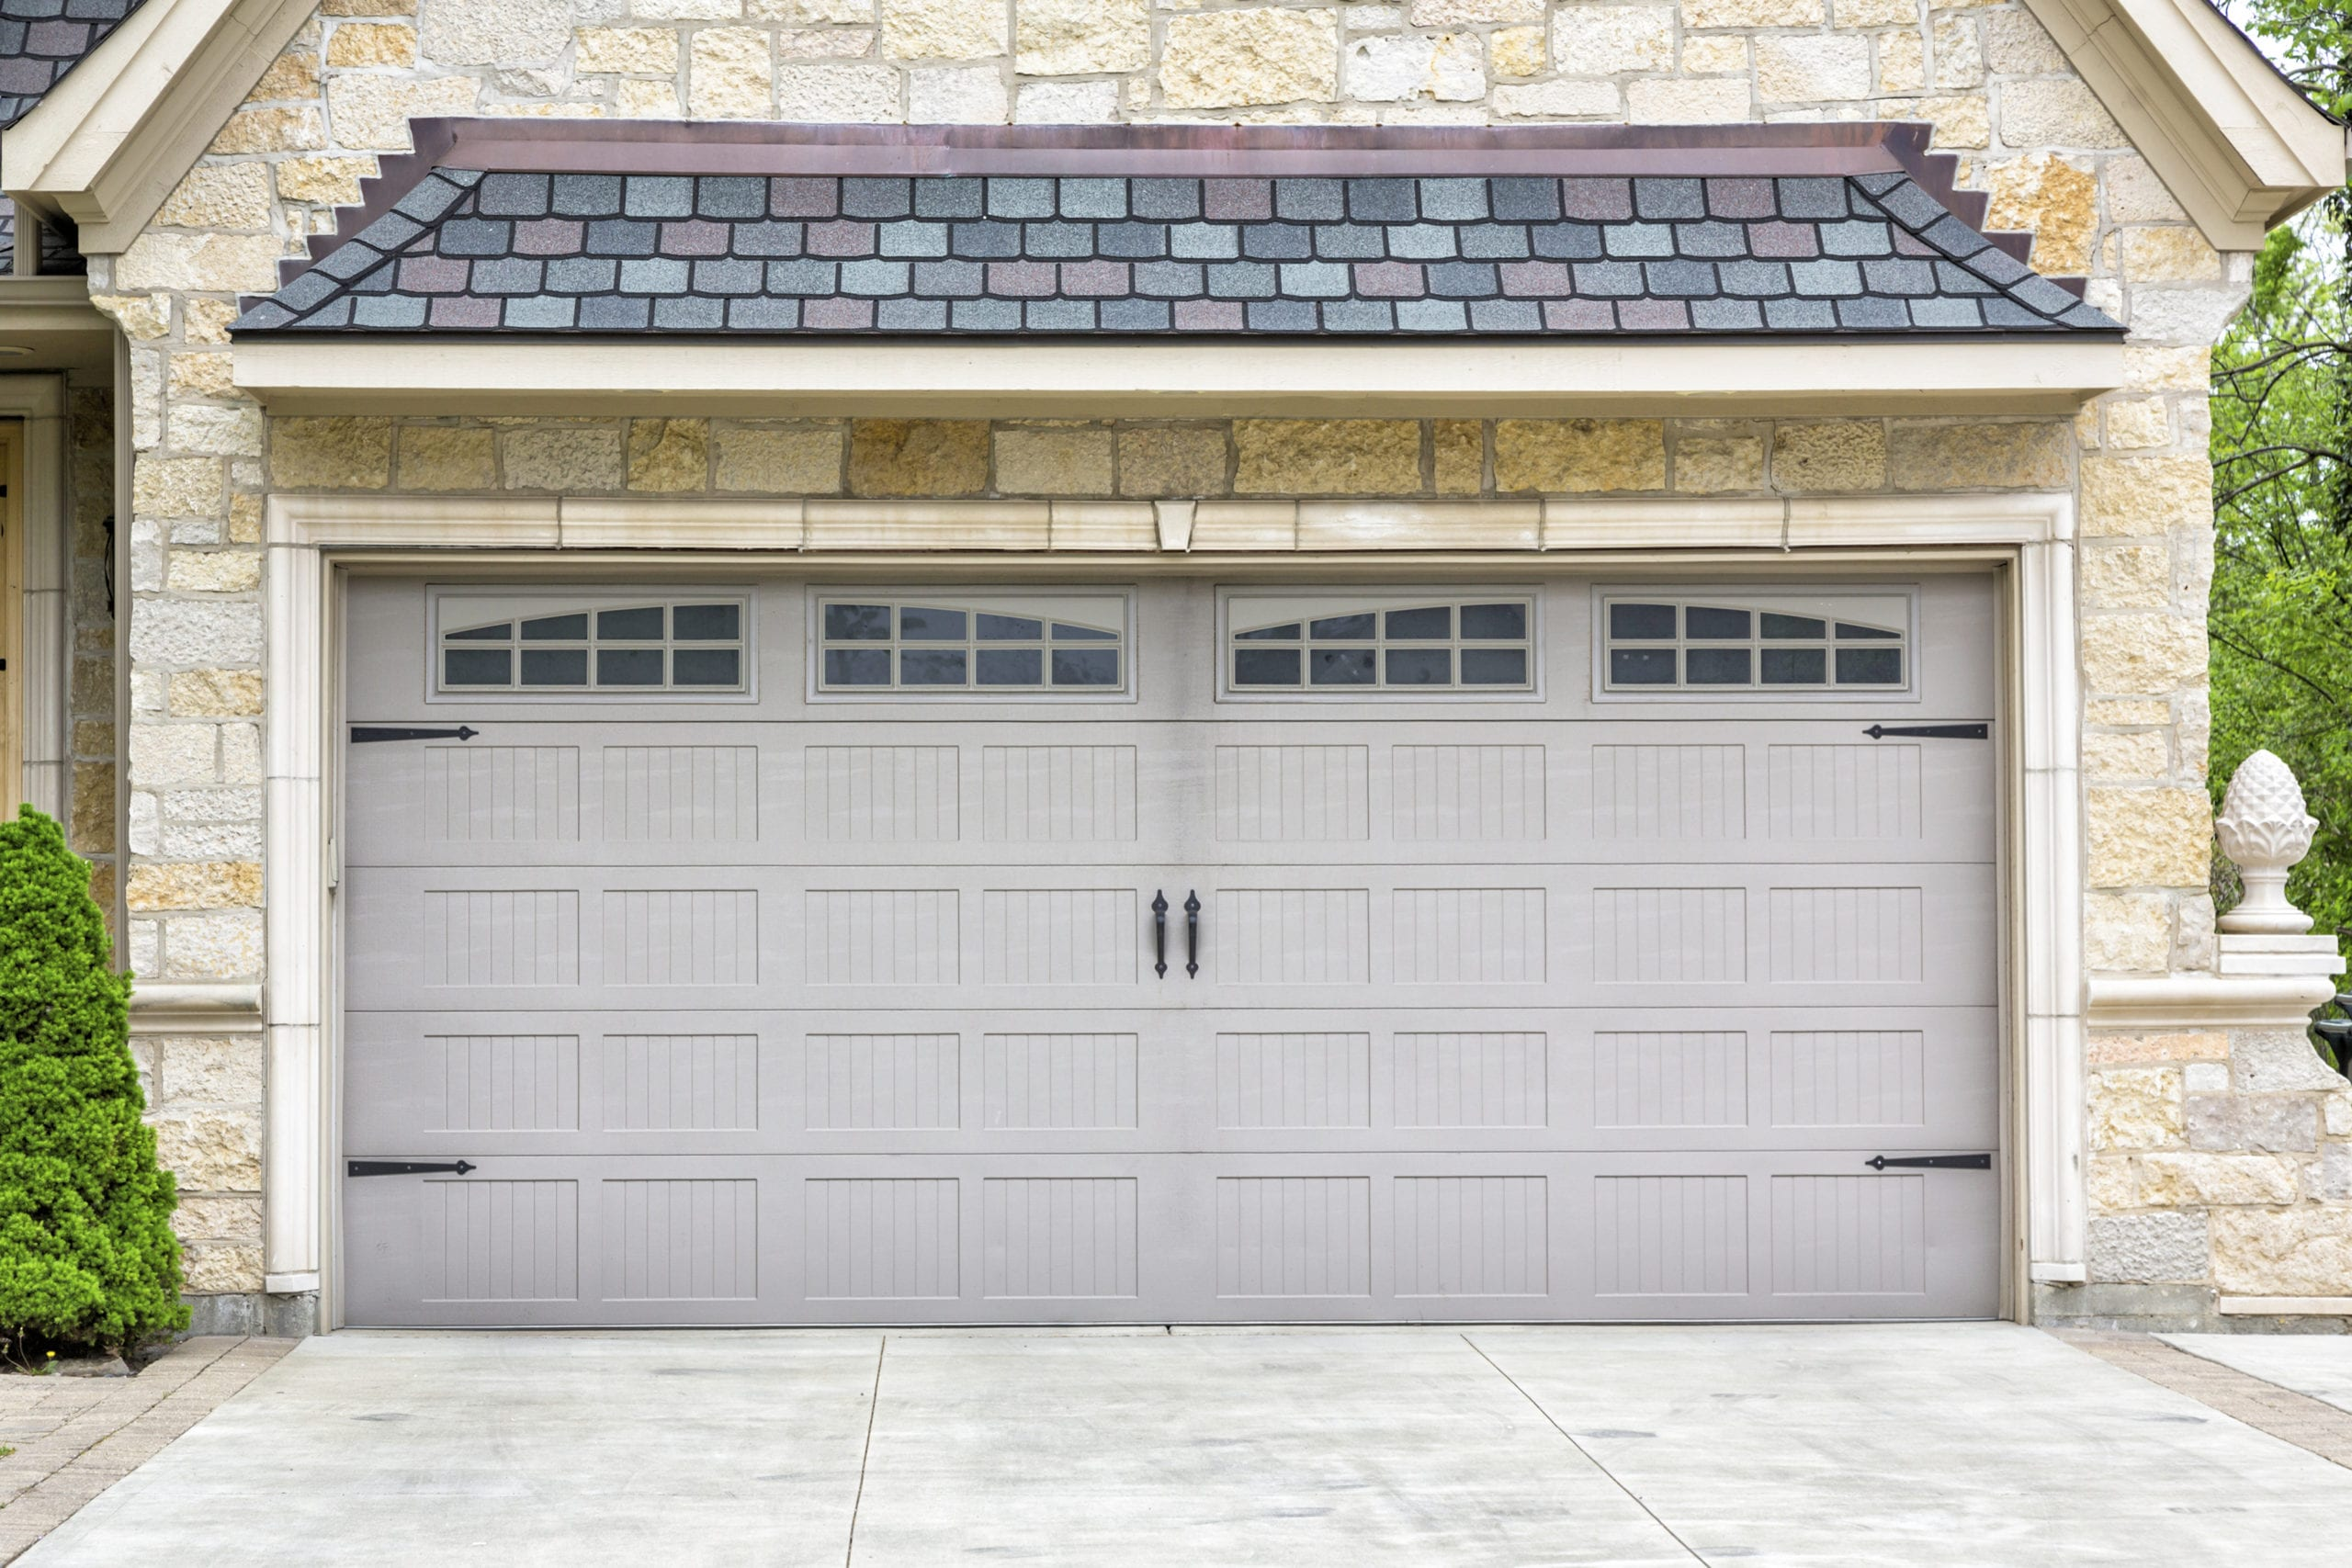 Reasons to Replace Your Garage Doors